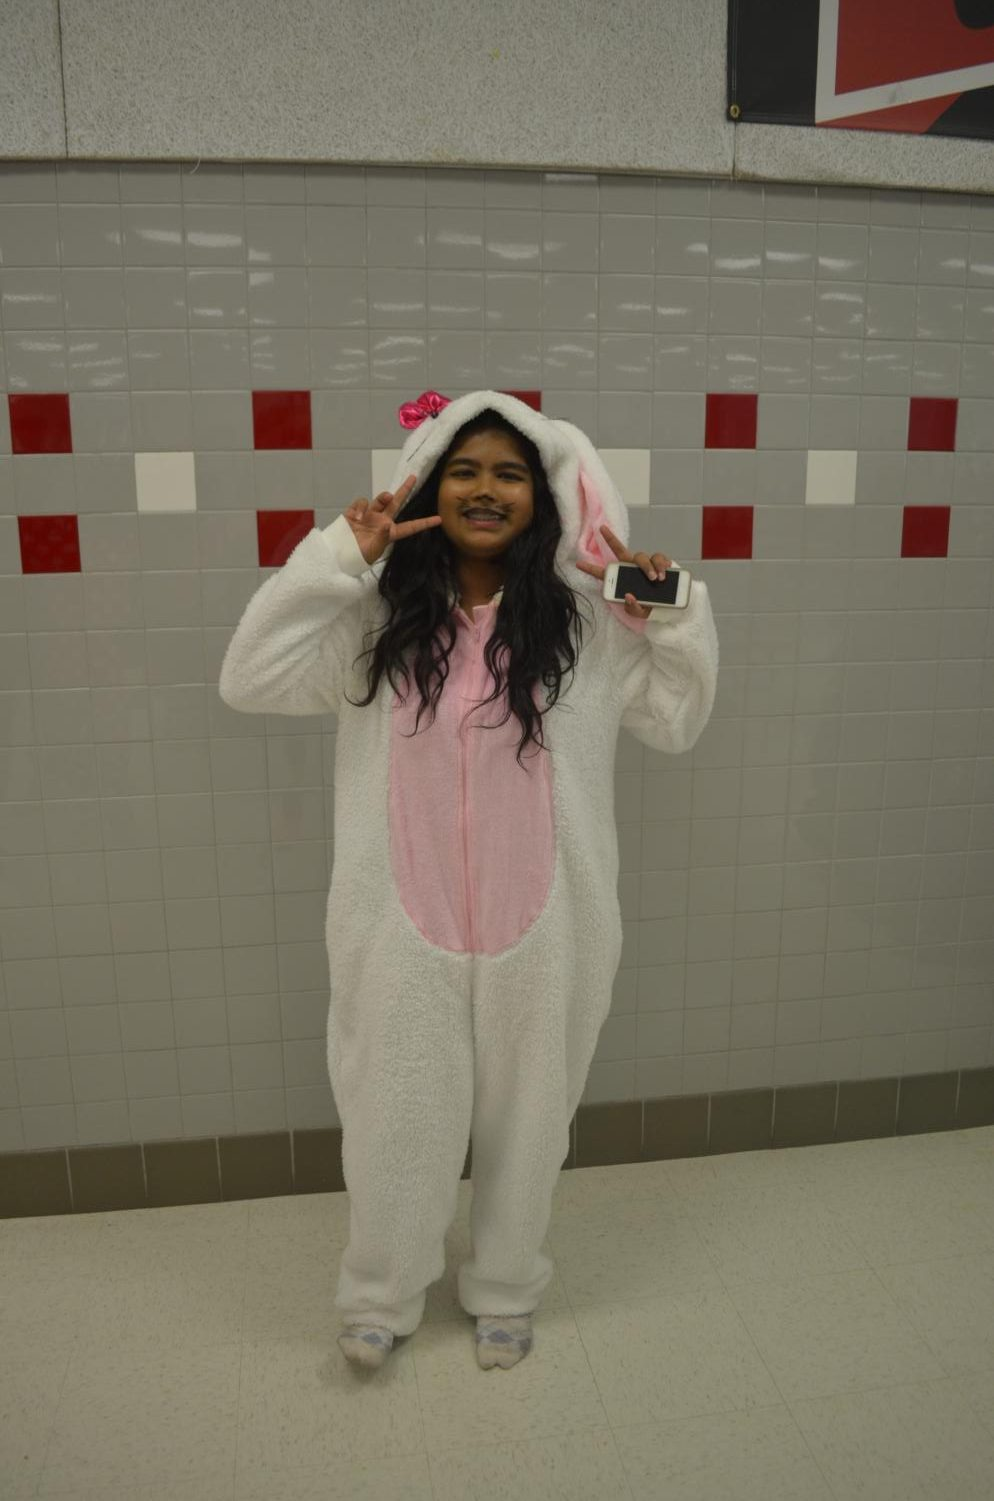 Sophomore+Farjana+Mim+dresses+up+as+a+bunny+in+a+onesie.